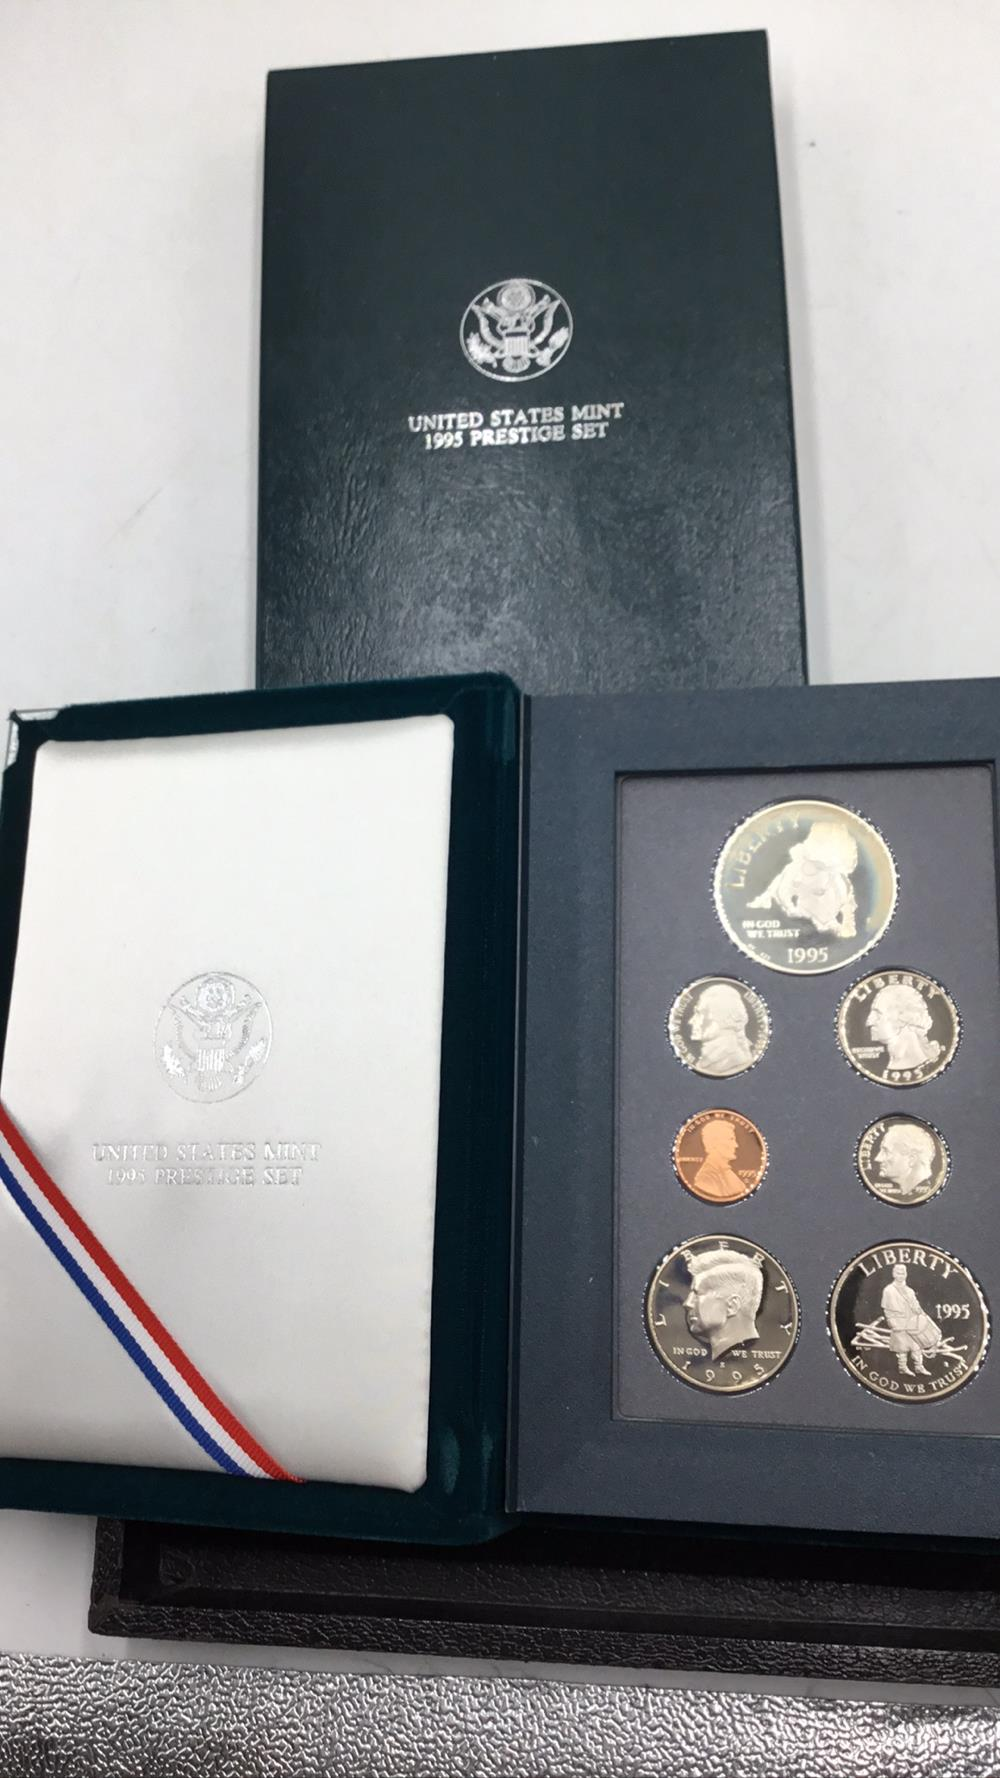 United states mint Prestige set, silver war